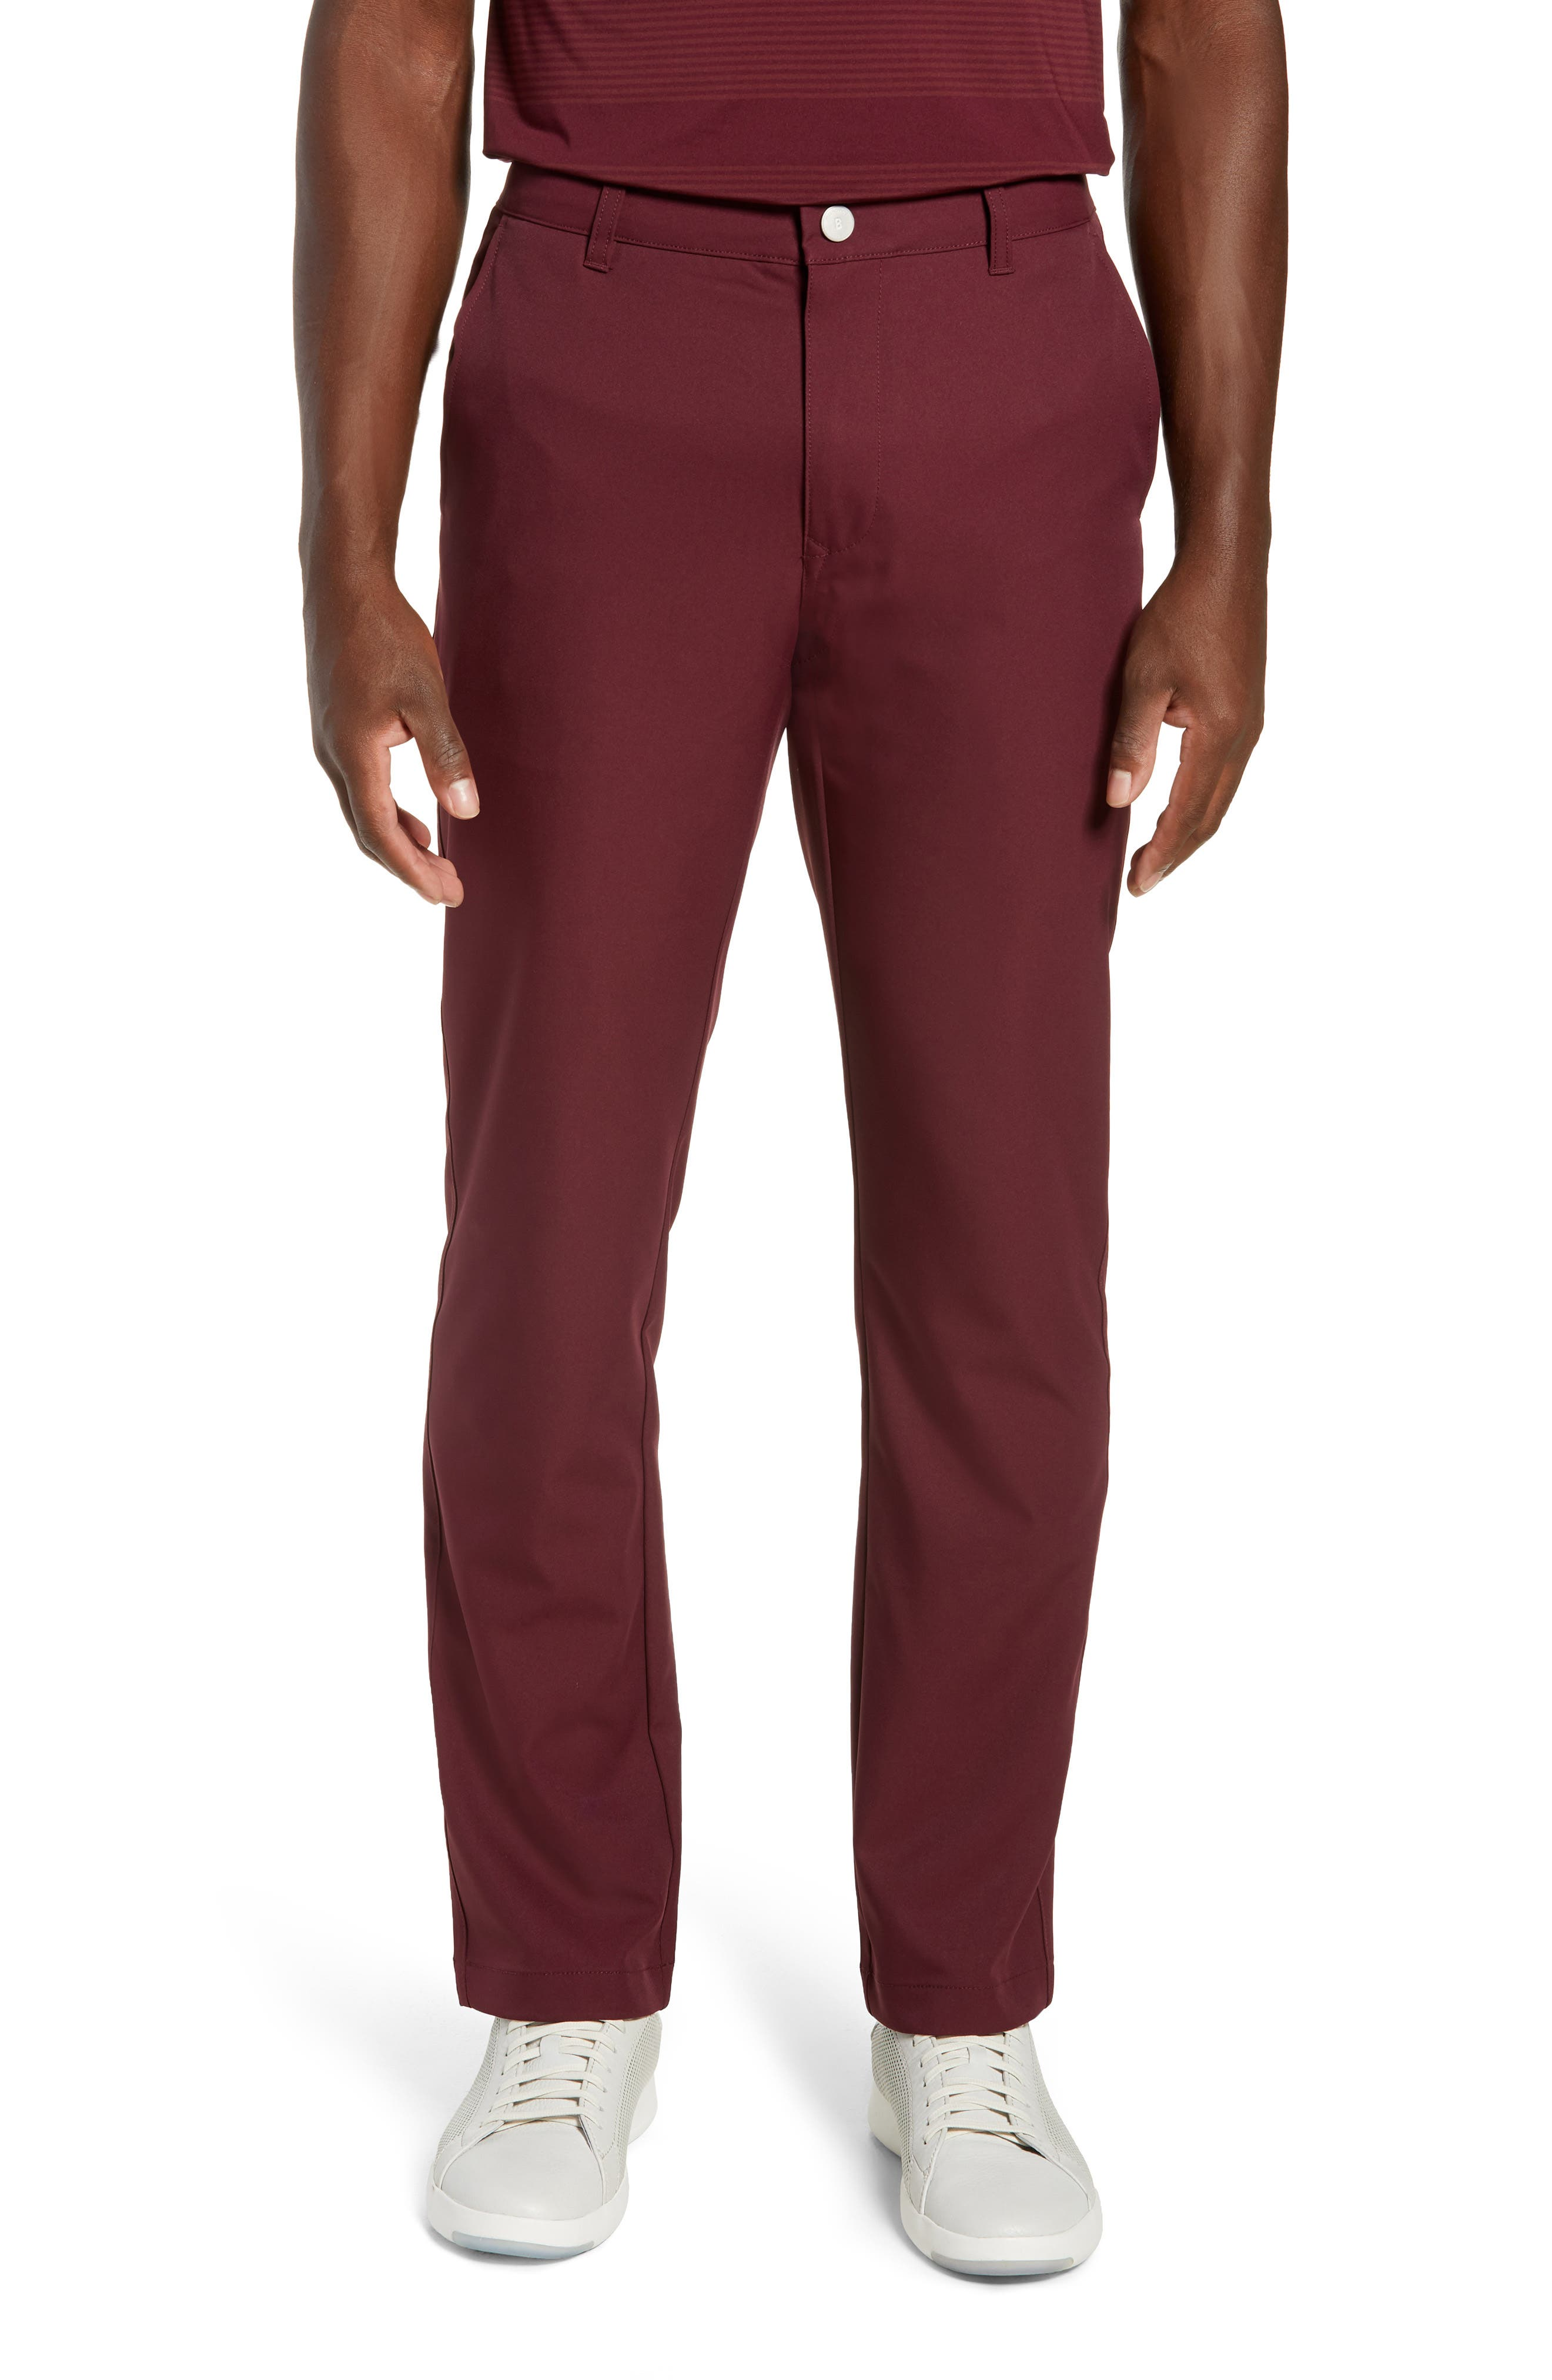 Highland Slim Fit Golf Pants,                             Main thumbnail 1, color,                             600